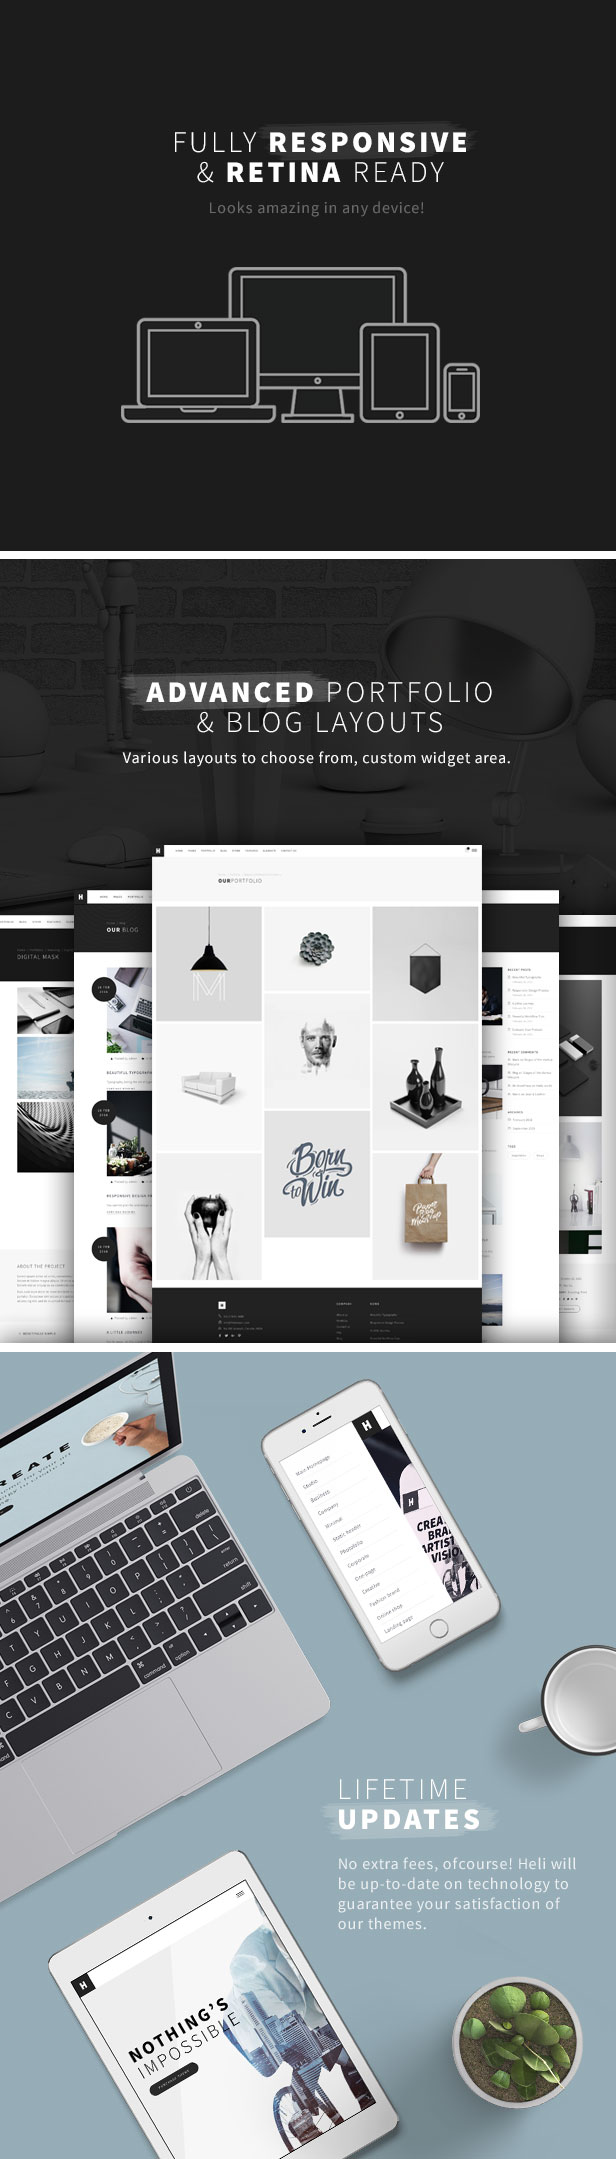 rMinimal Creative Black and White WordPress Theme - esponsive & retina